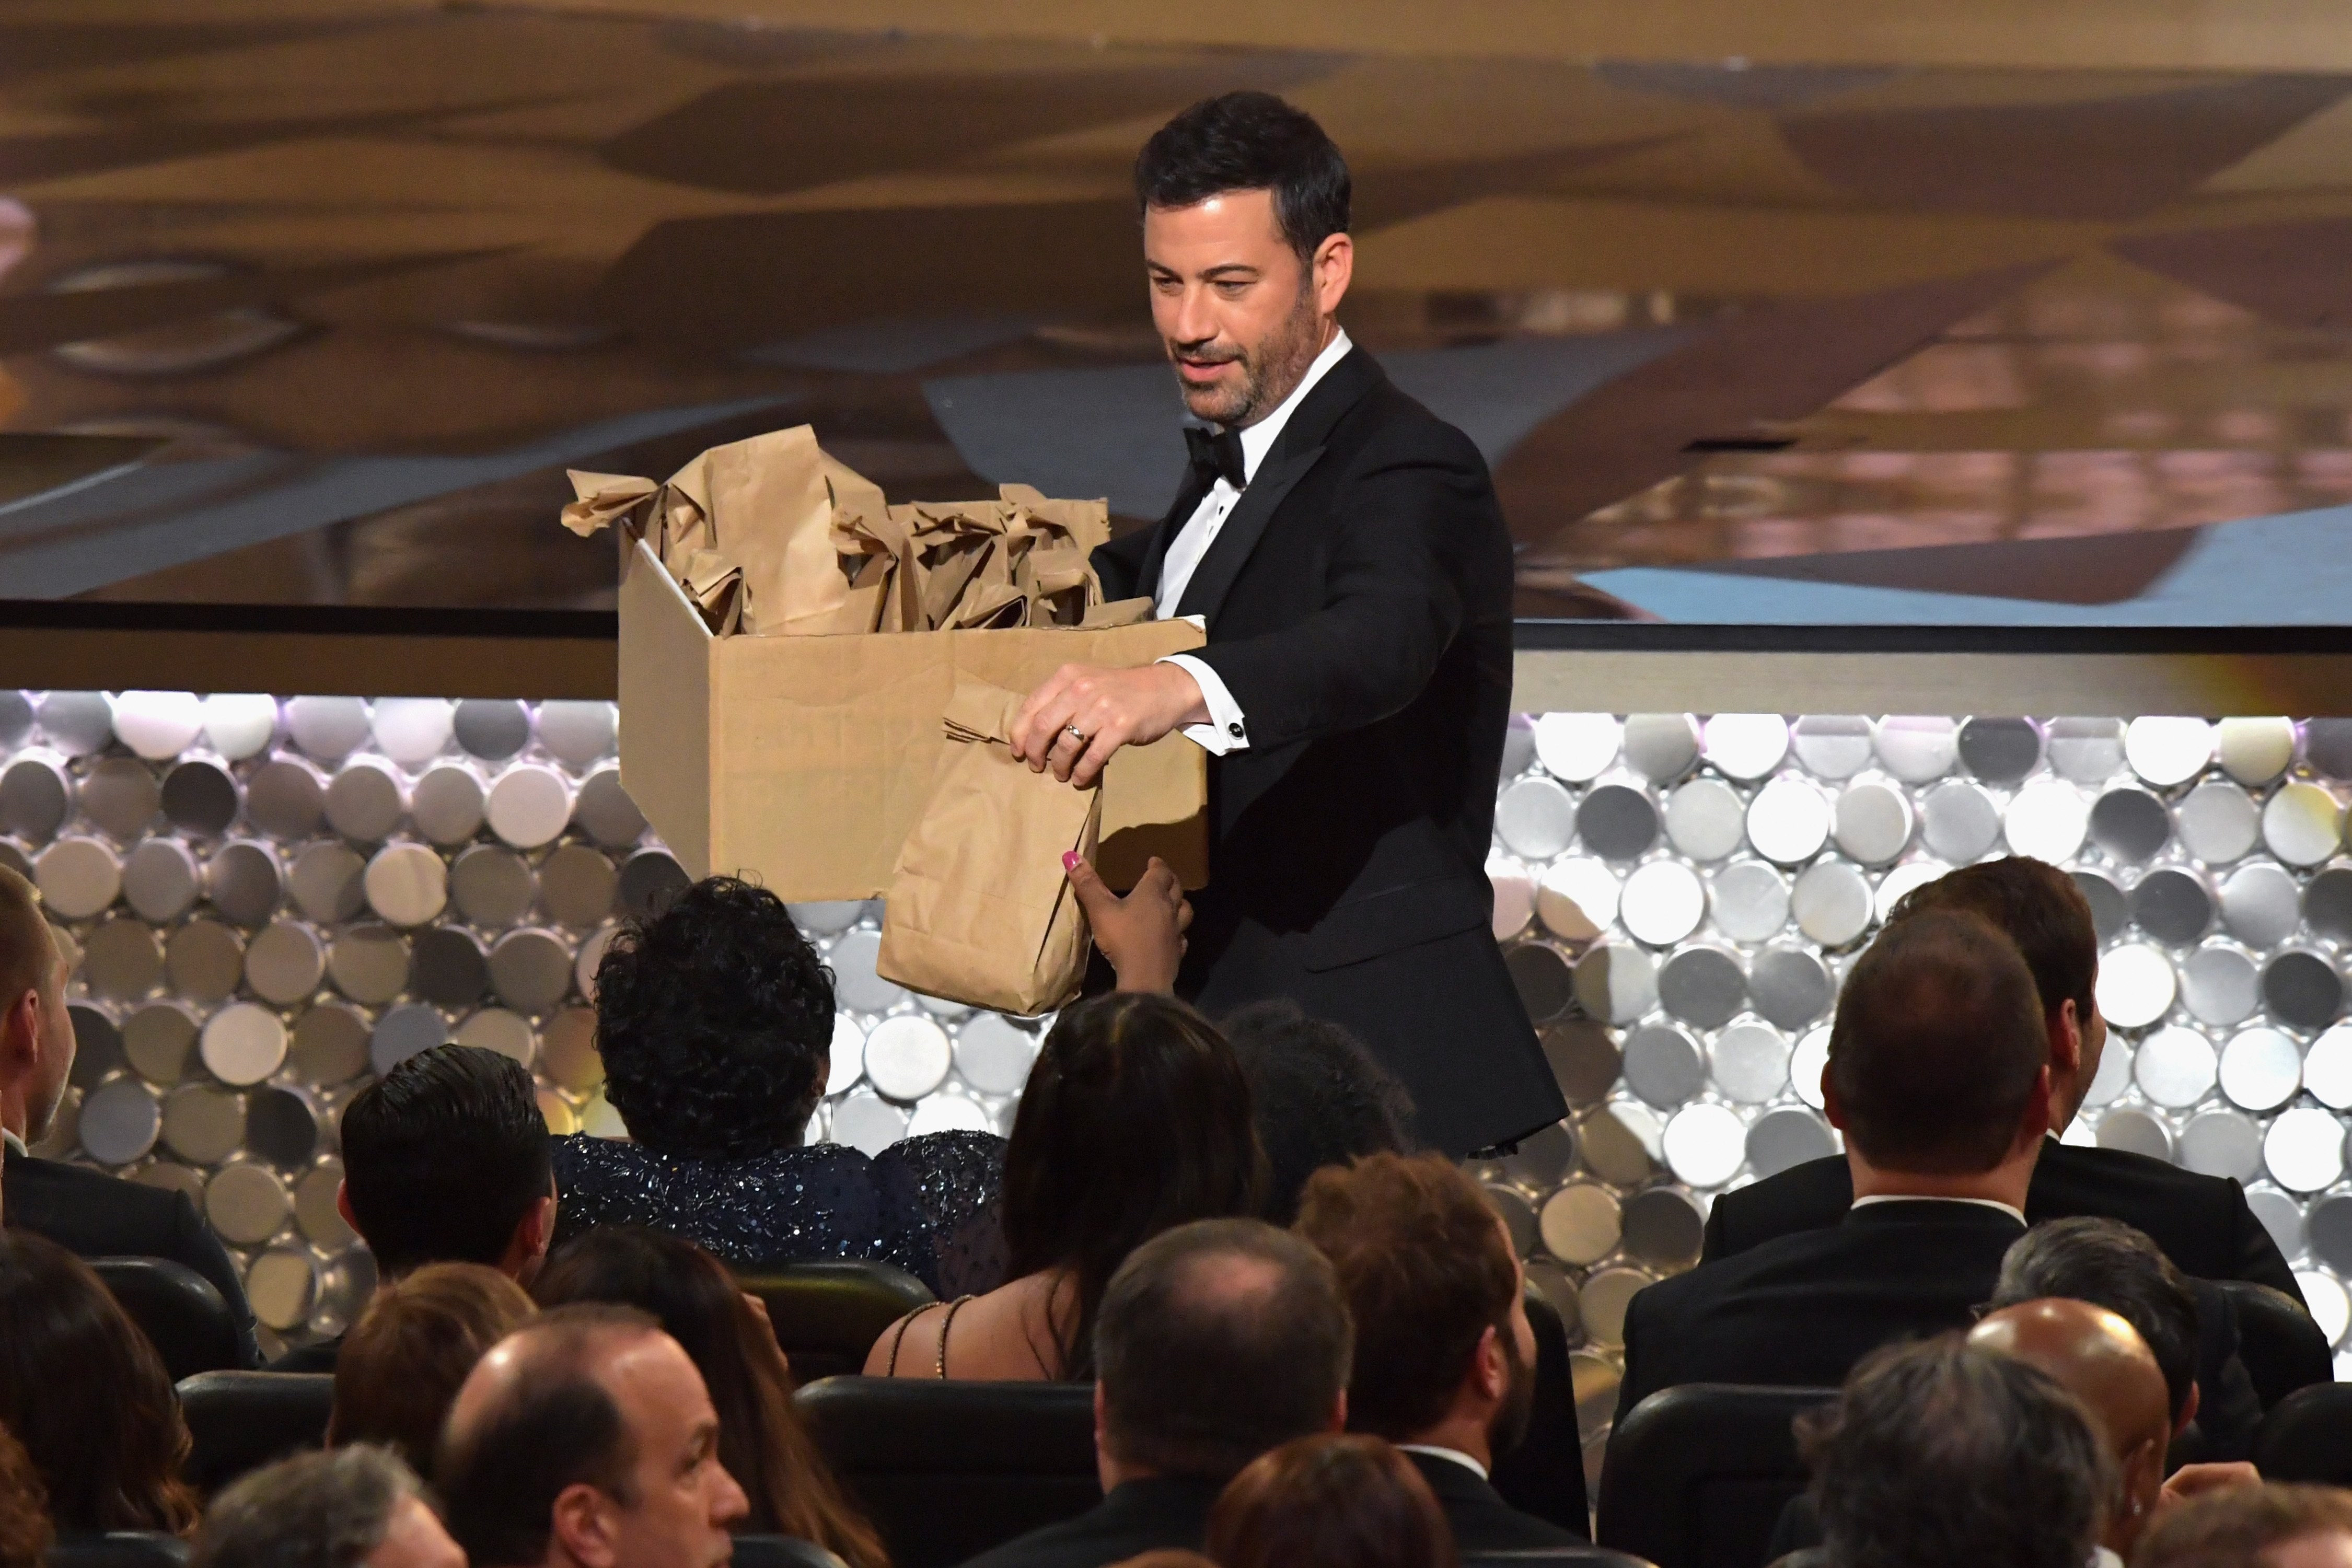 Host Jimmy Kimmel distributes snacks during the 68th Annual Primetime Emmy Awards at Microsoft Theater on September 18, 2016 in Los Angeles